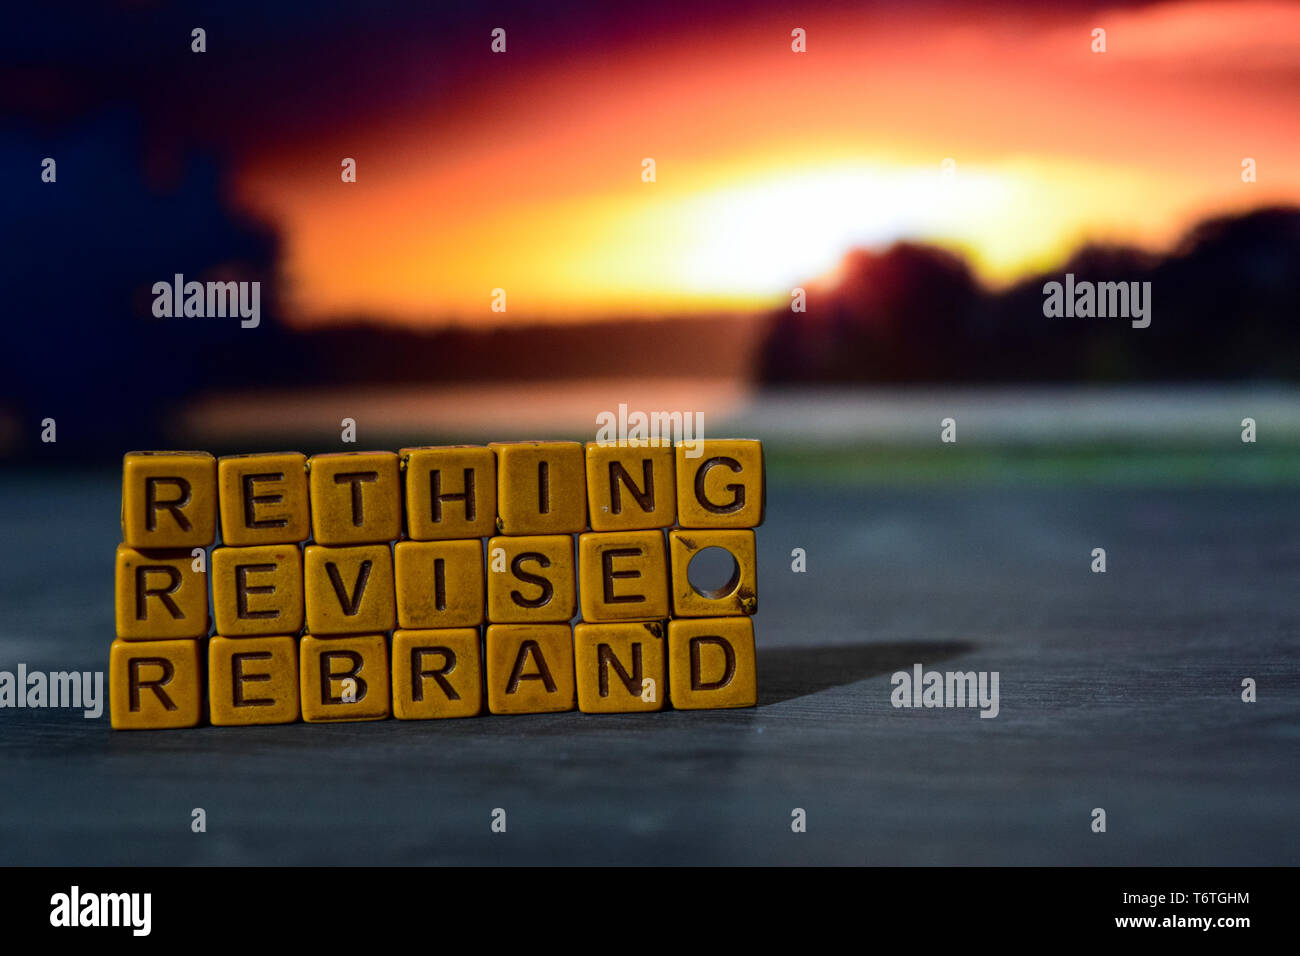 Rethink - Revise - Rebrand on wooden blocks. Cross processed image with bokeh background - Stock Image